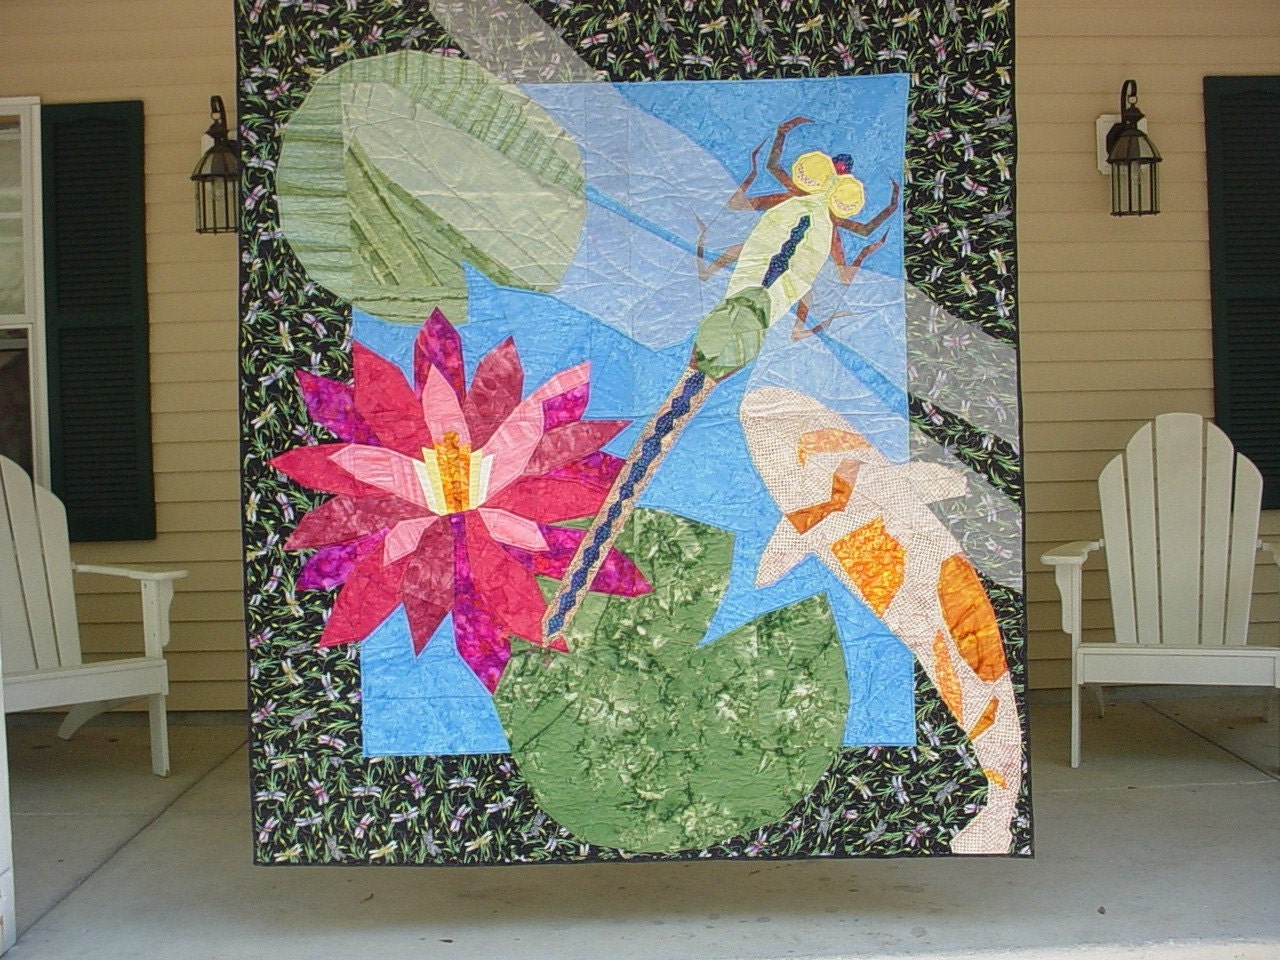 Handmade quilt dragon fly koi fish lilly pad for Koi pond quilt pattern